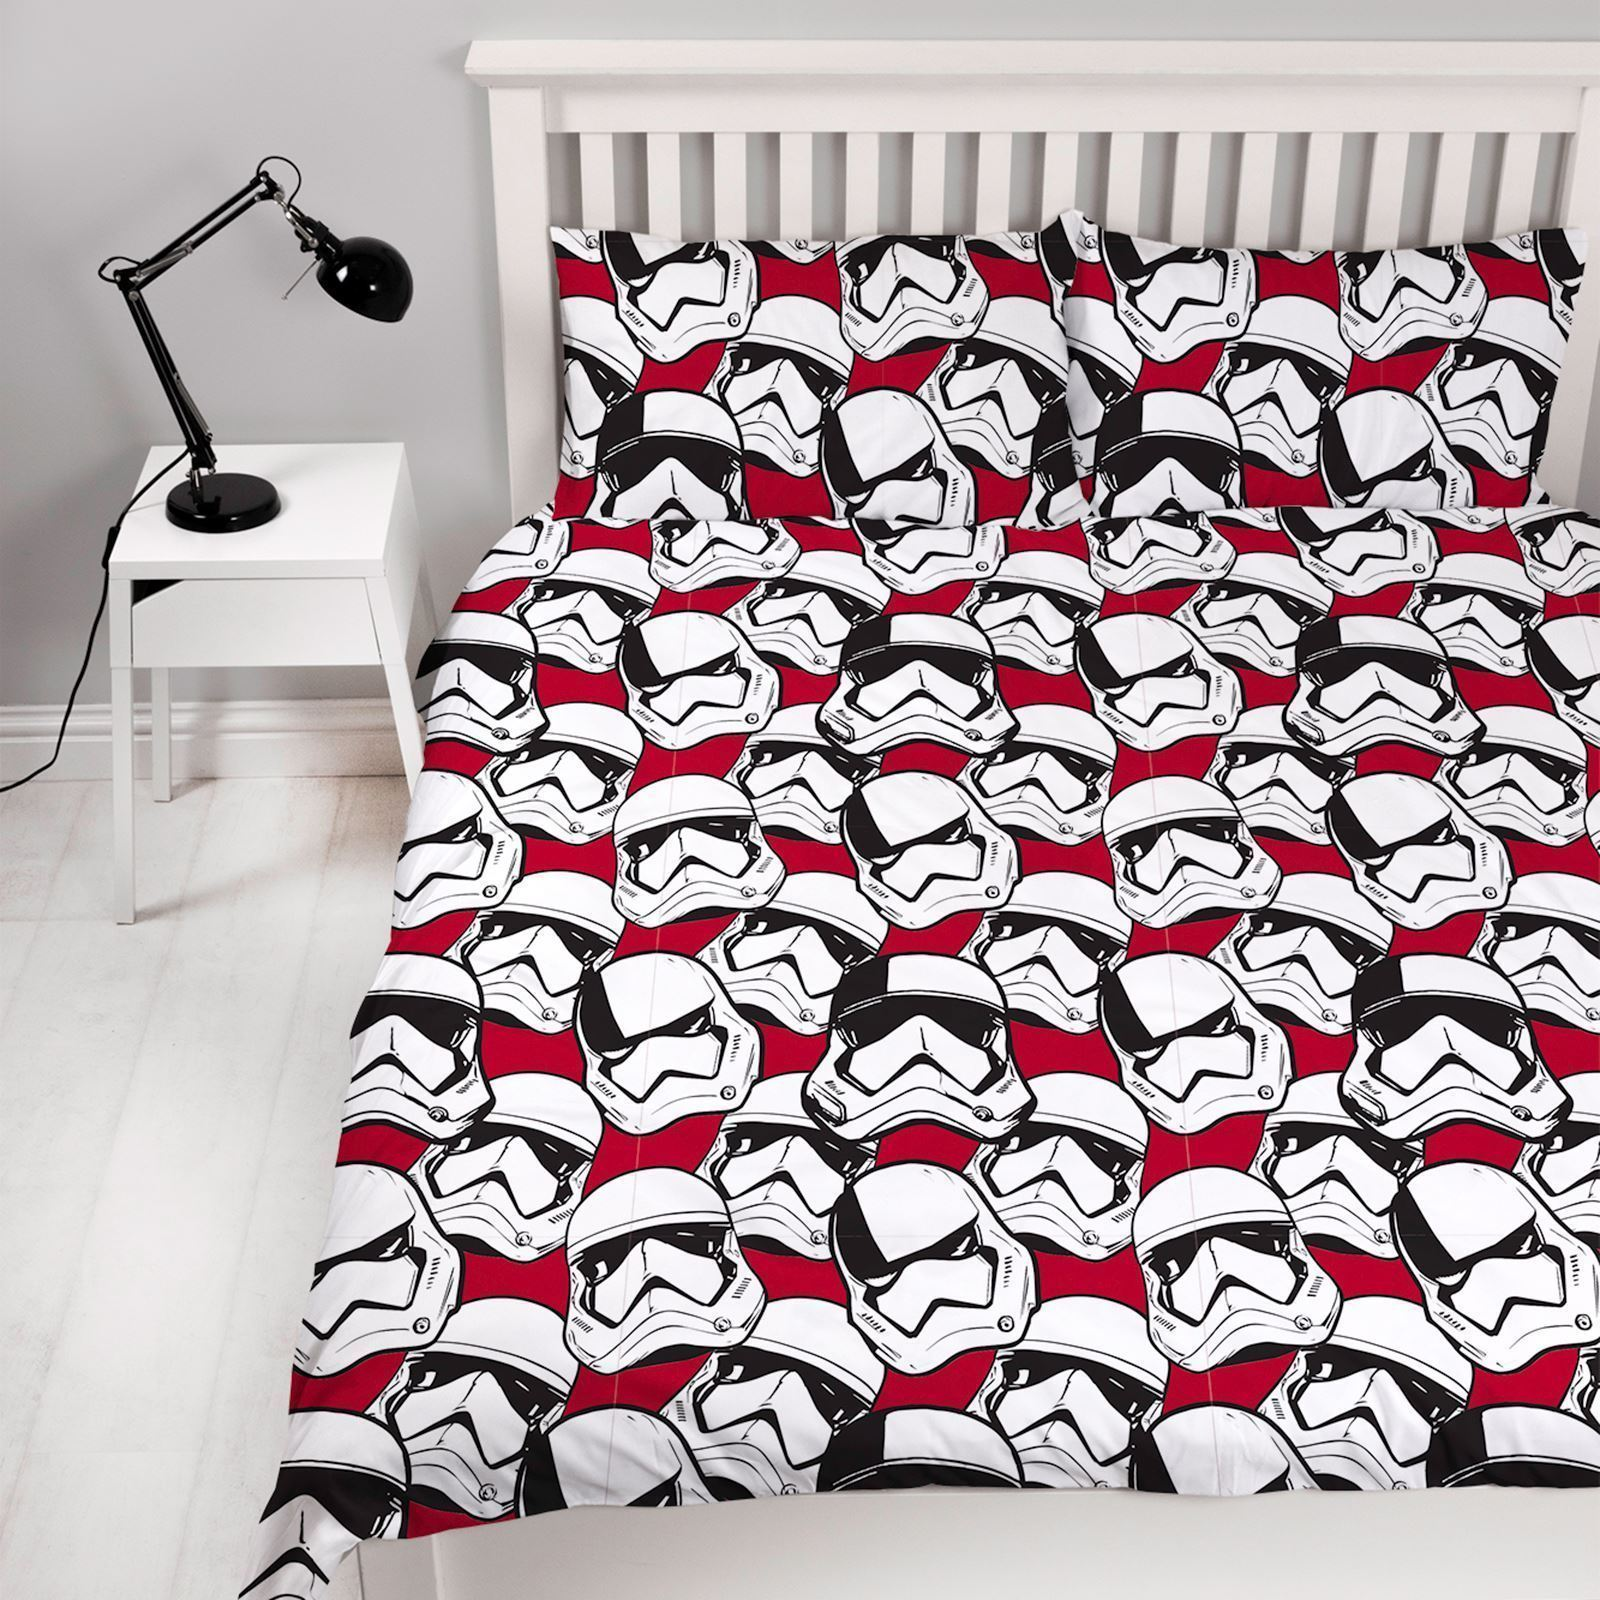 Official-Star-Wars-Licensed-Duvet-Covers-Single-Double-Jedi-Darth-Vader-Lego thumbnail 46